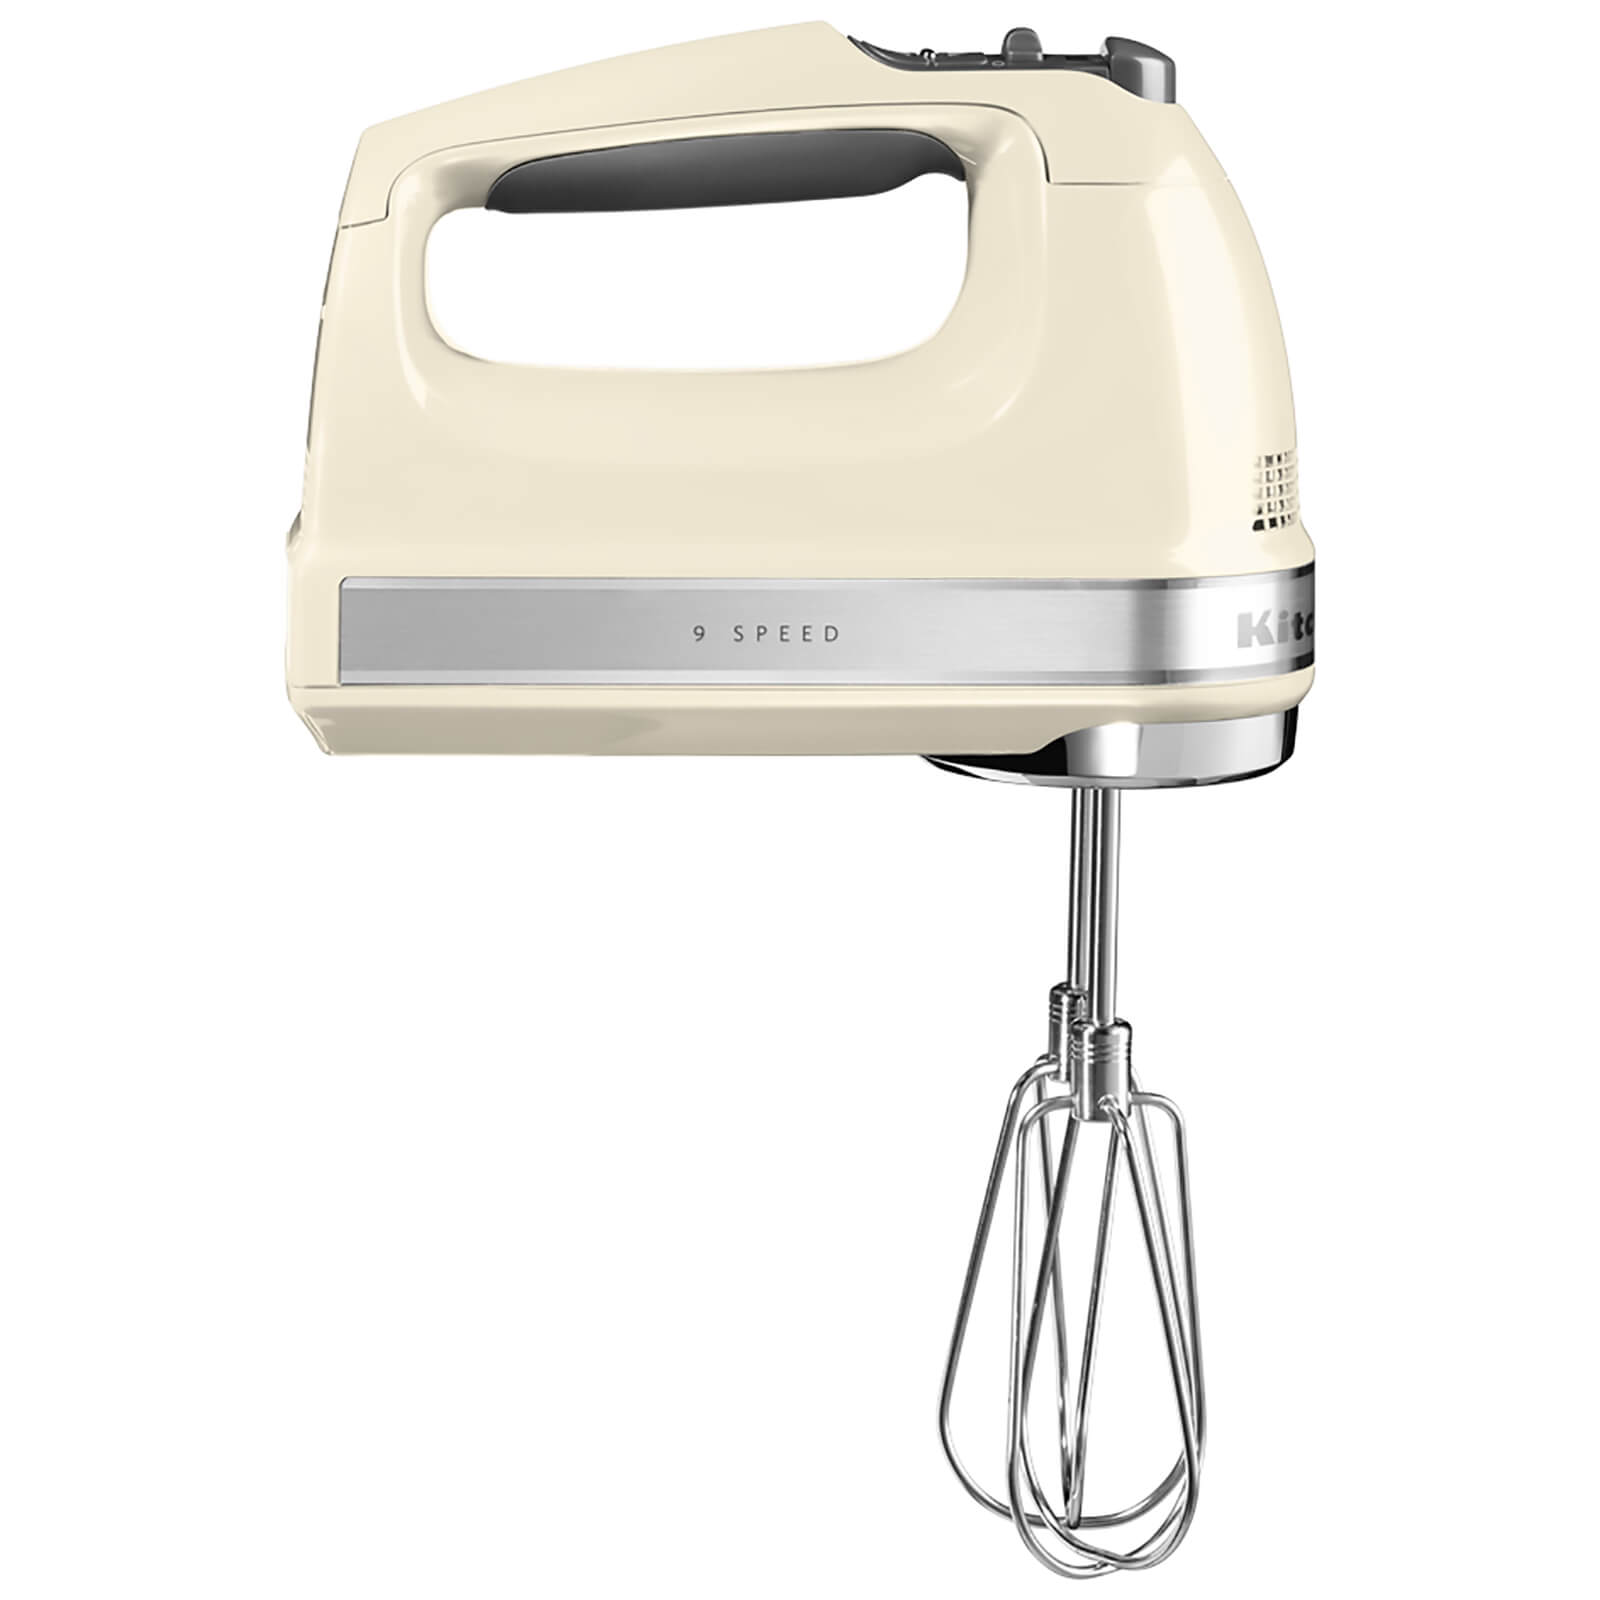 KitchenAid 5KHM9212BAC 9 Speed Hand Mixer - Almond Cream